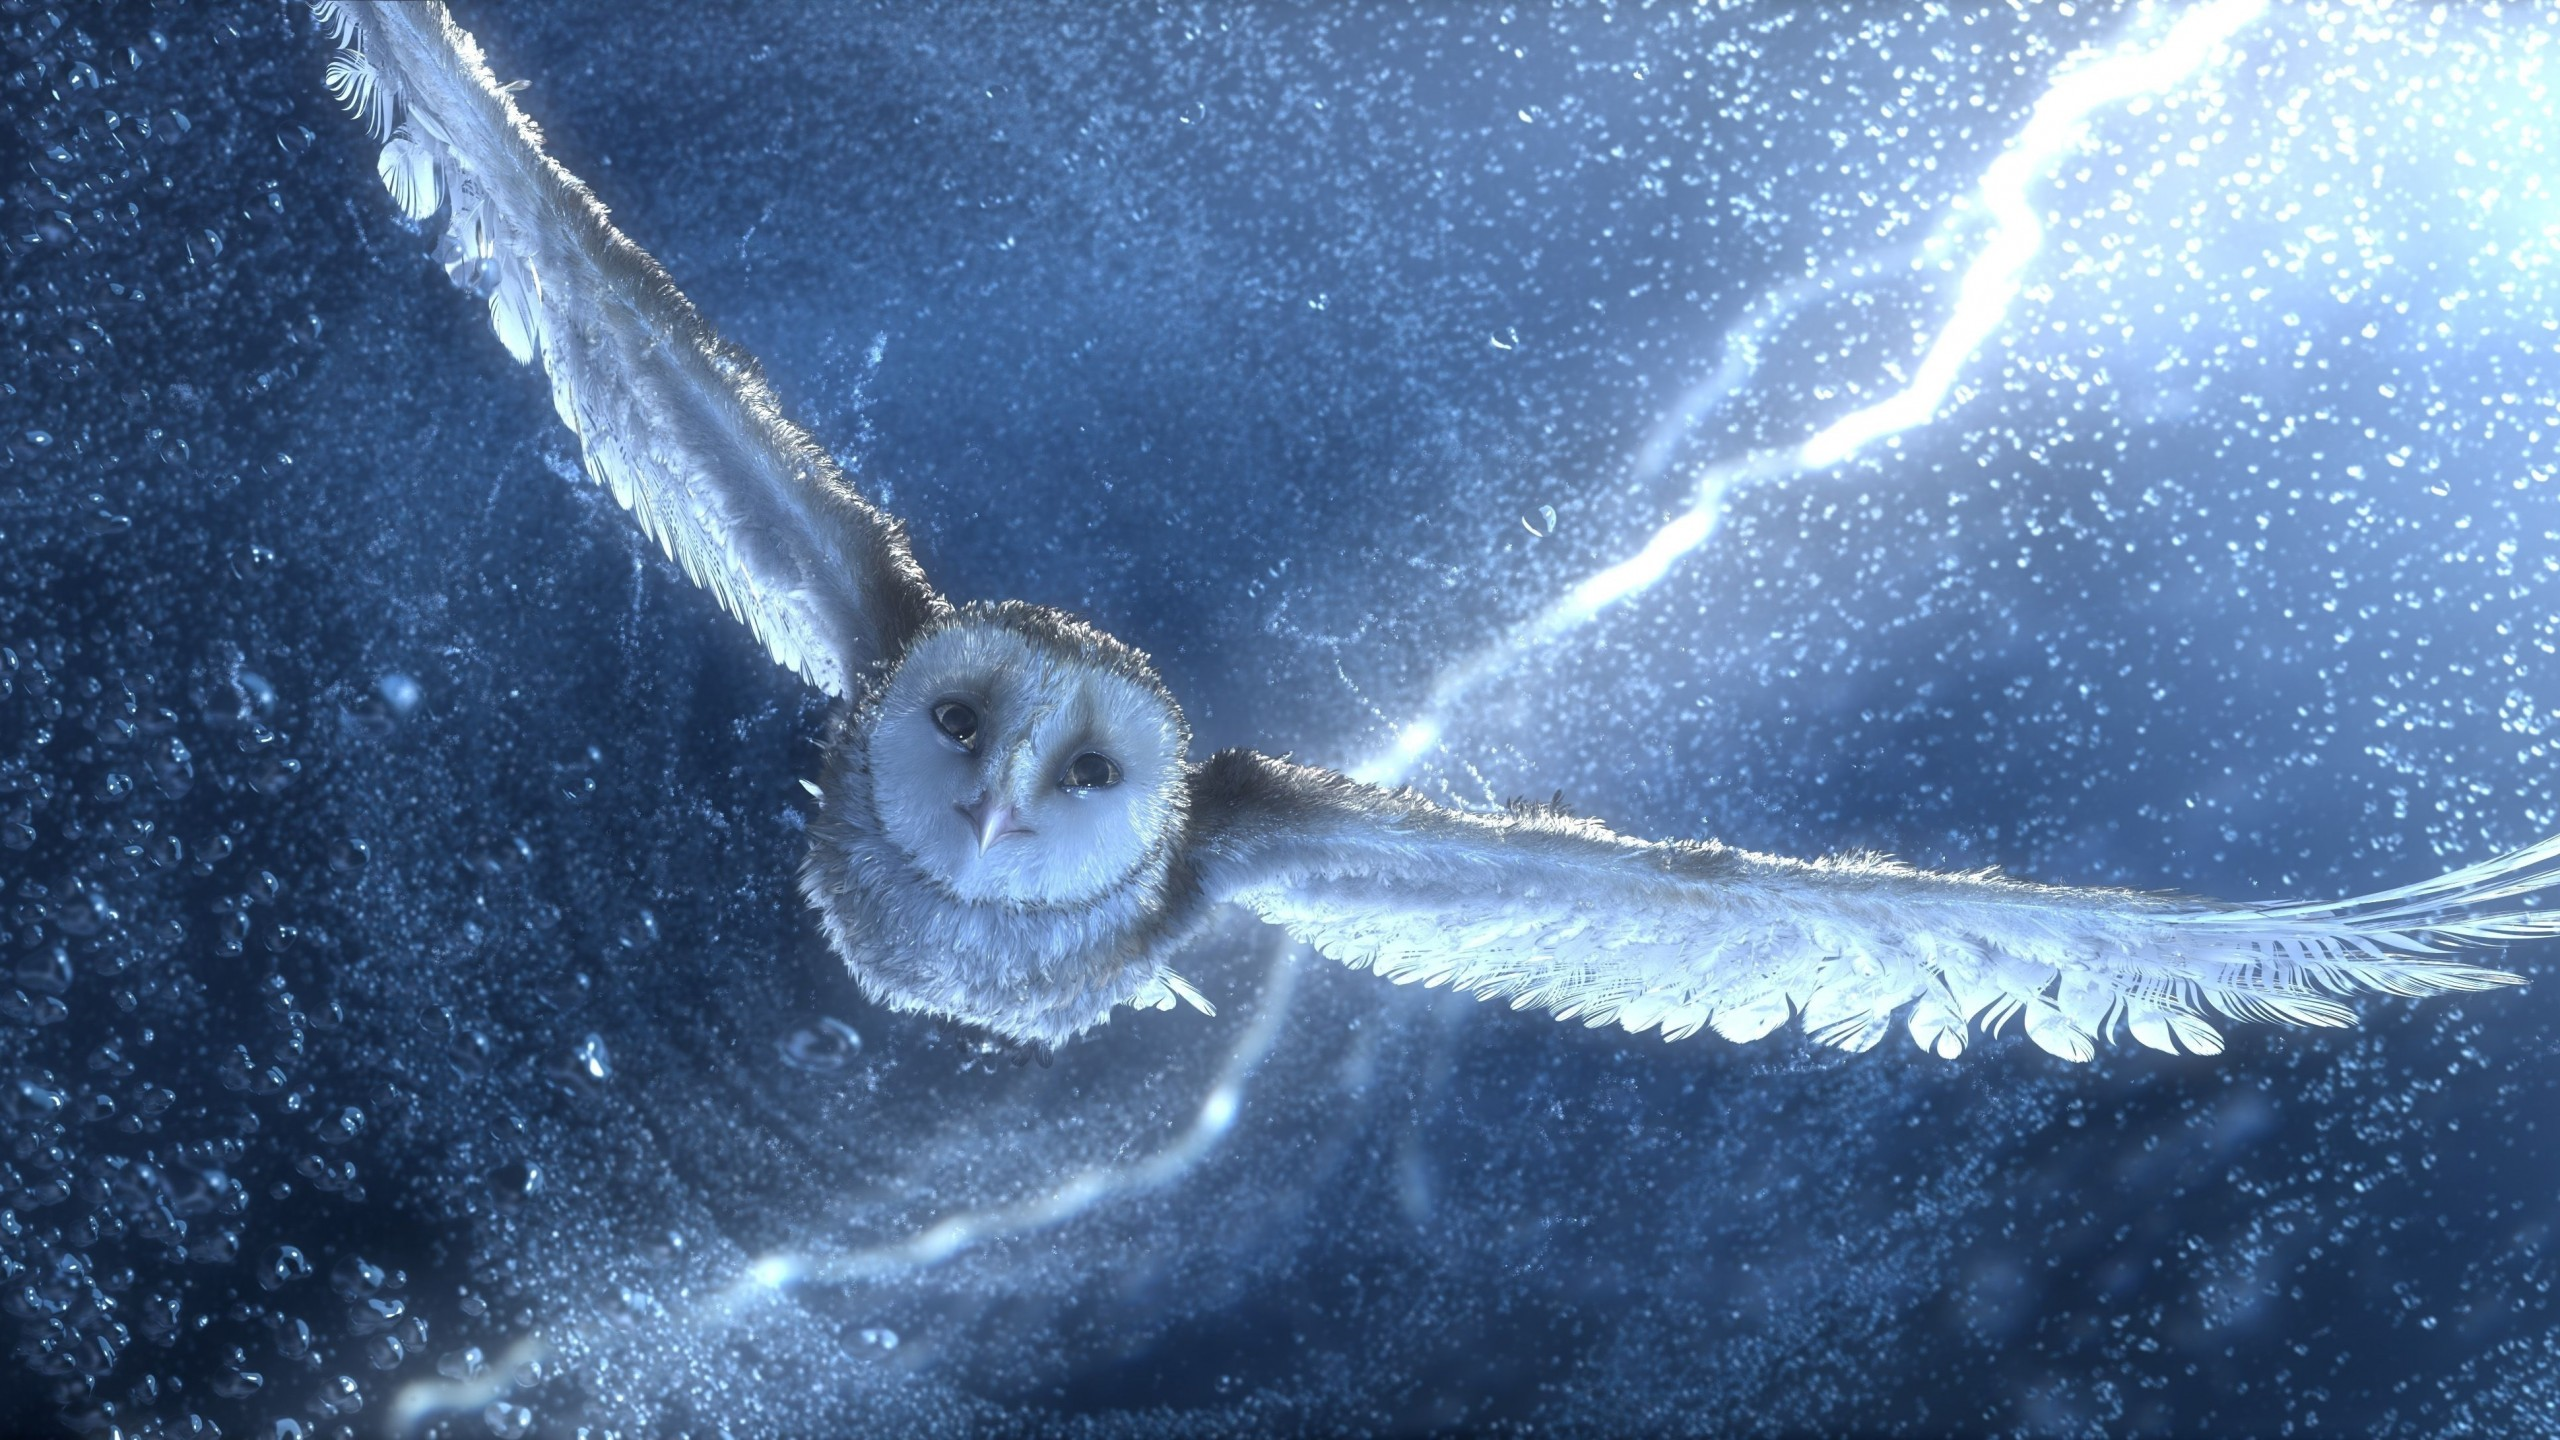 The Cars Wallpaper For Birthday Wallpaper Owl Flying Snow Storm Lightning Blue Bird